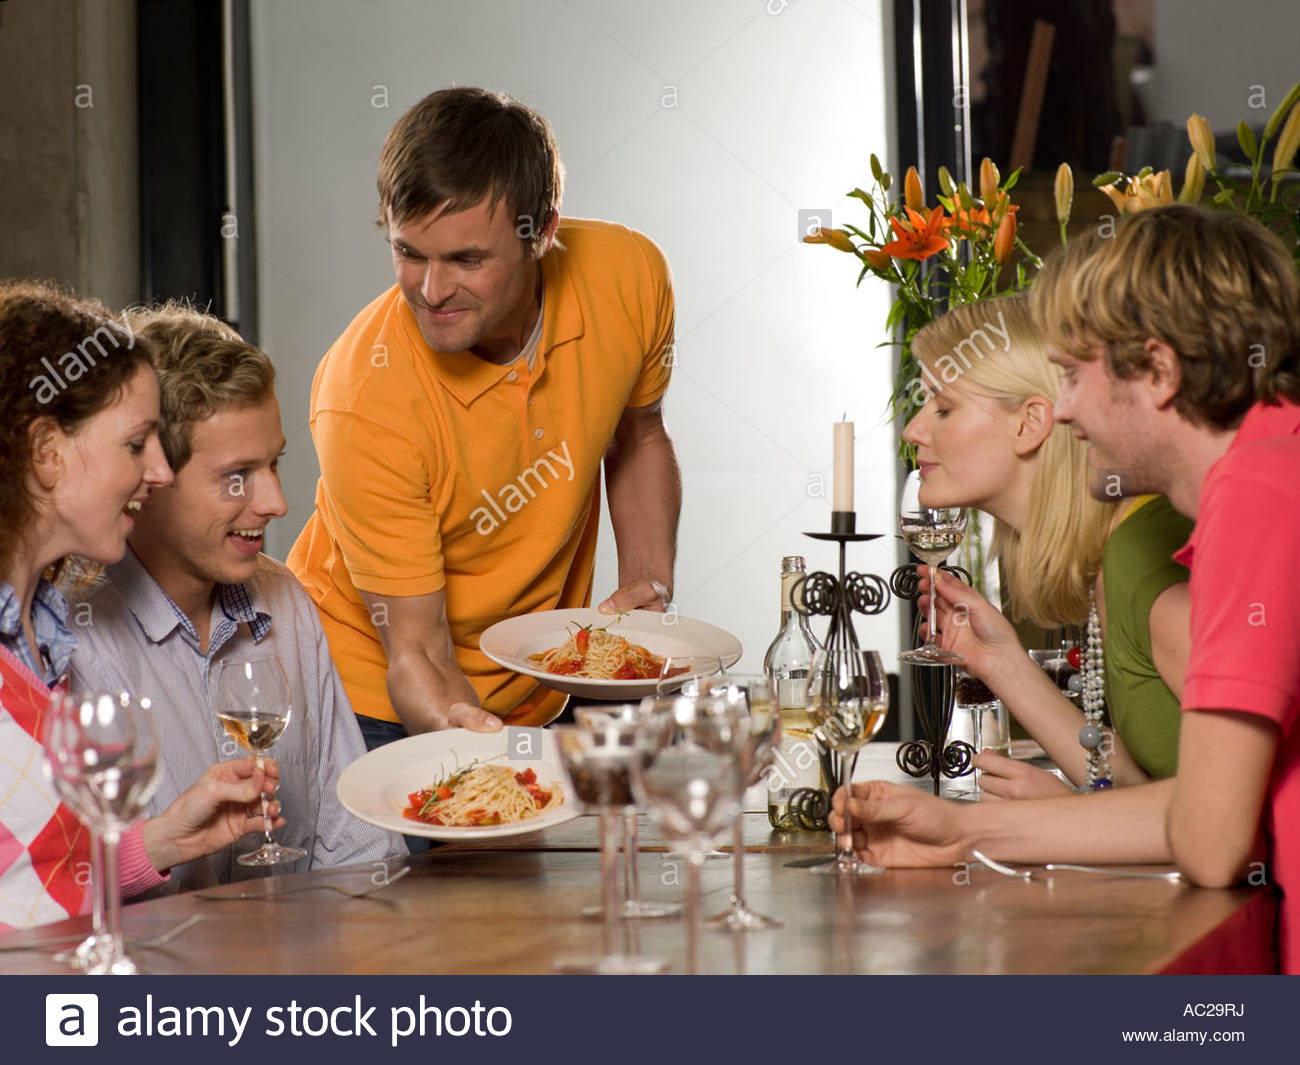 Young man serving noodles to two young couples at the dining table - Stock Image